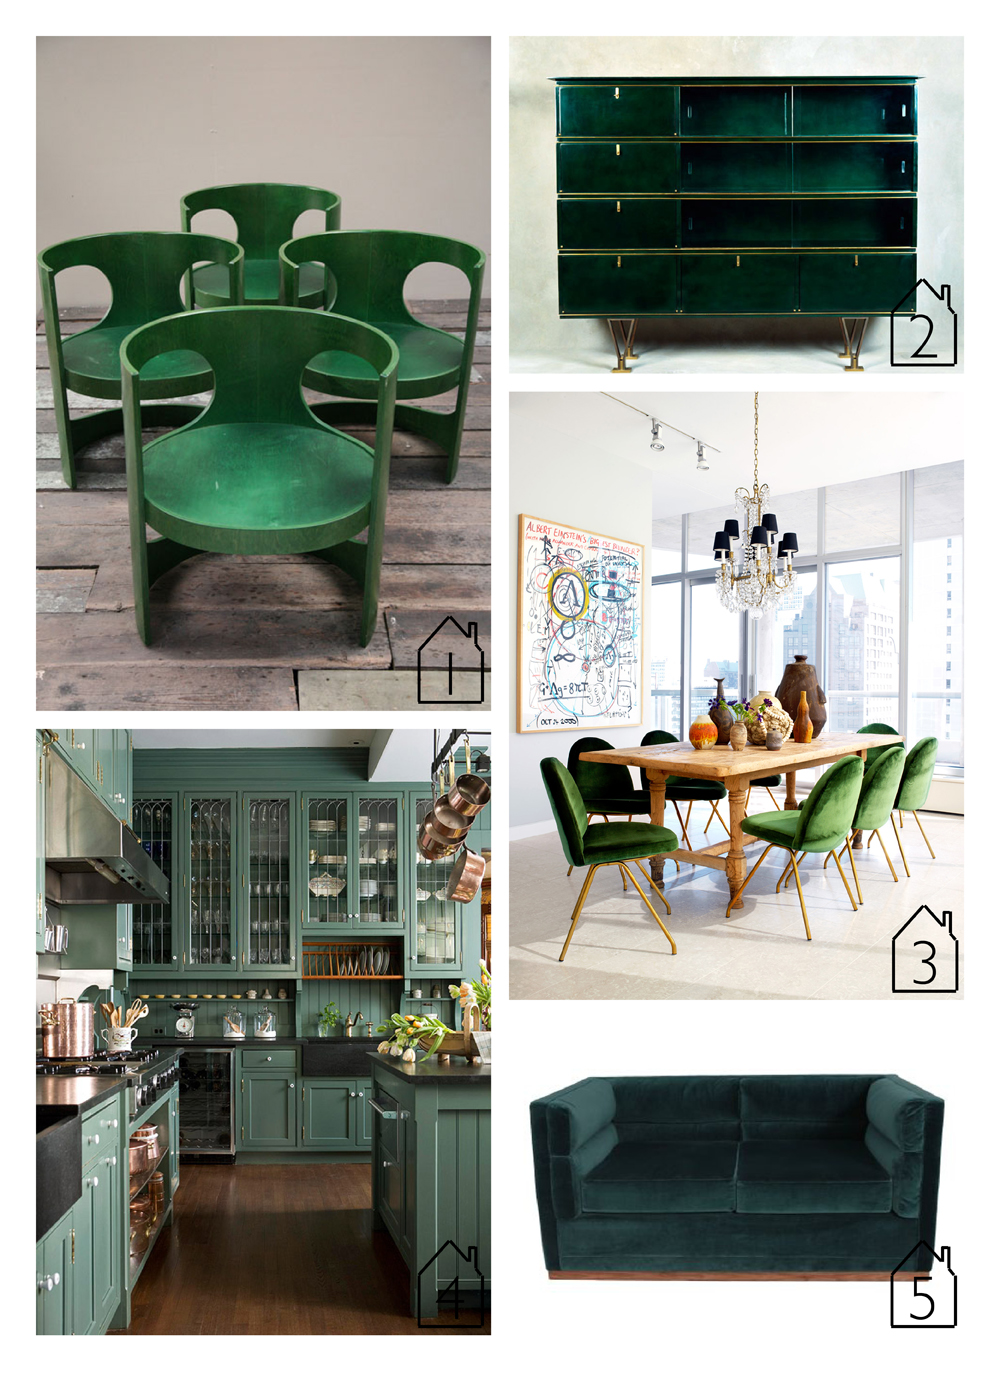 1. Arne Jacobsen's 'pre pop' dining chairs via  Cream & Chrome   2. Dresser designed by Leleu May via  Maison Gard   3. Interior by  4. Kitchen featured in  Better Homes & Gardens   5. Berlin 2 sofa by  Organic Modernism